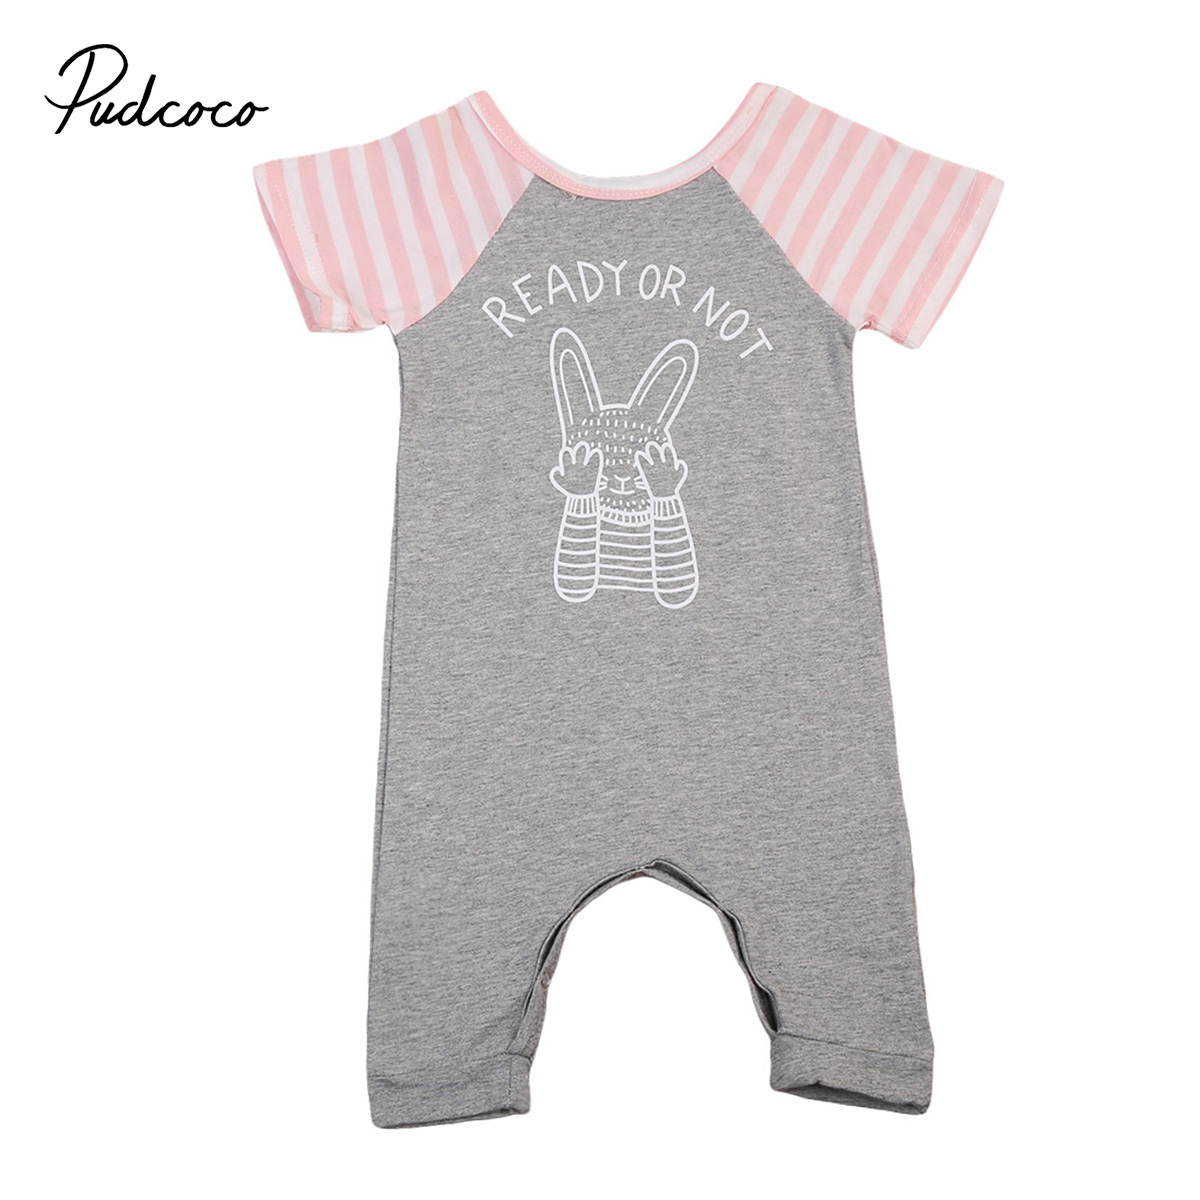 Pudcoco Newborn Infant Baby Girls Boys Rabbit Short Sleeve Romper Summer Cotton One-Piece Clothes 0-24M pudcoco newborn infant baby girls clothes short sleeve floral romper headband summer cute cotton one piece clothes